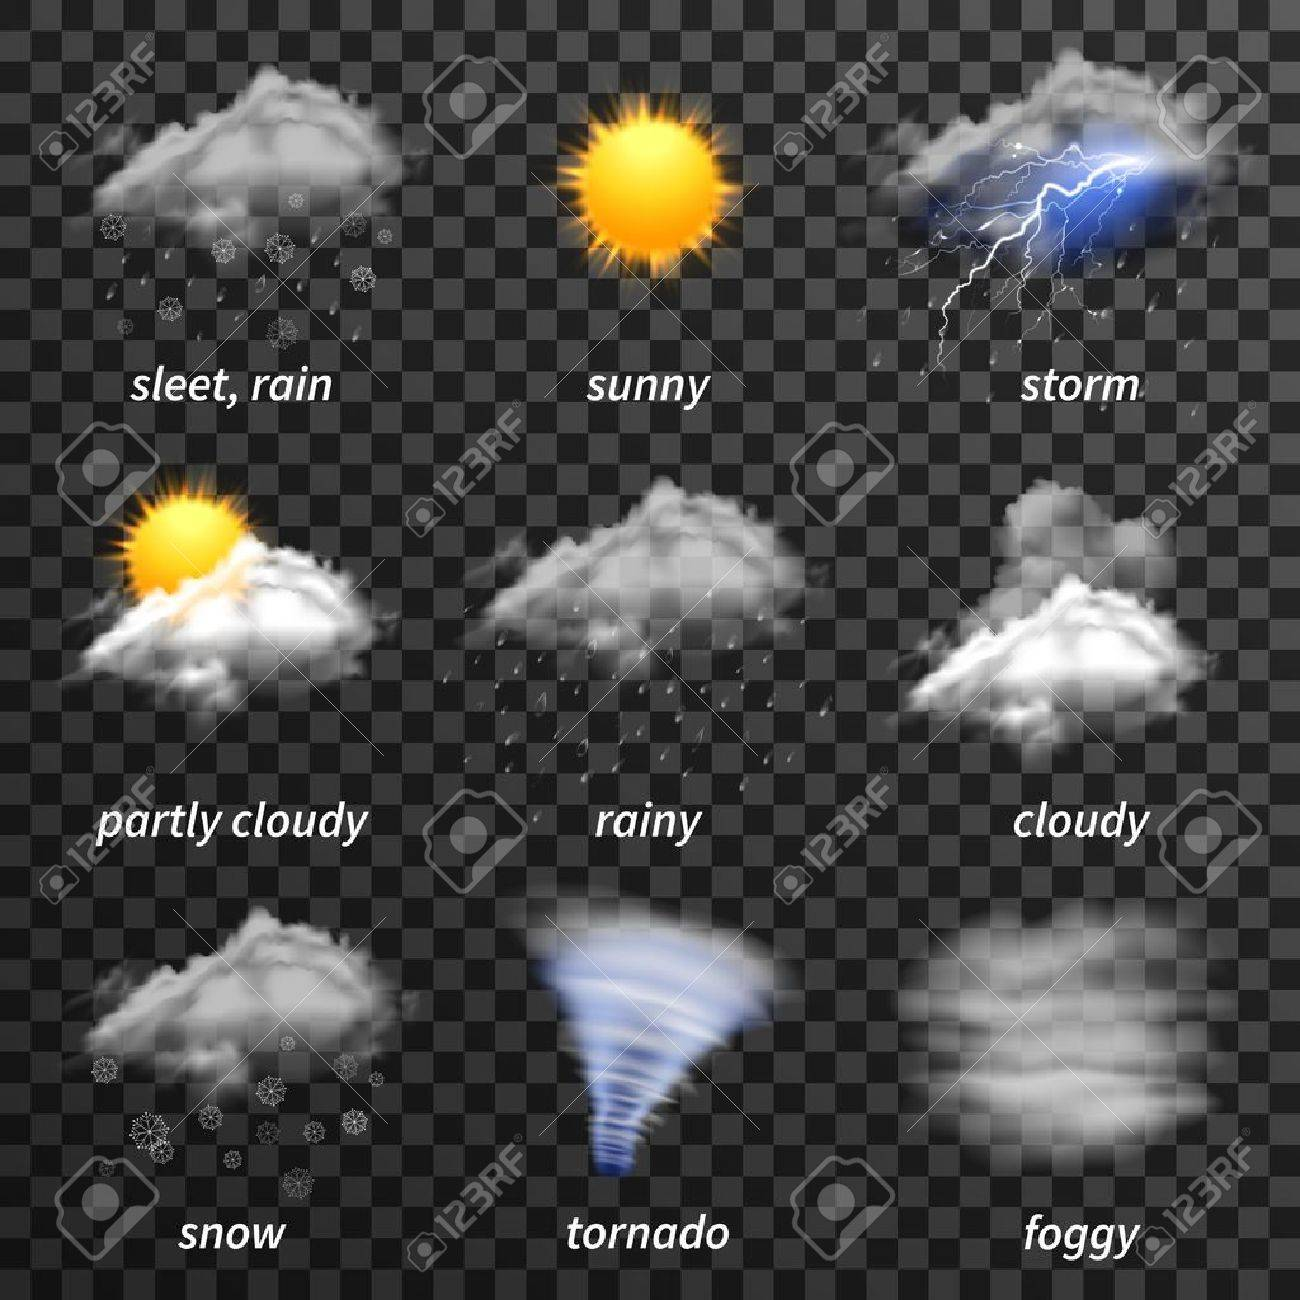 Realistic weather icons set isolated on transparent background vector illustration - 52694907